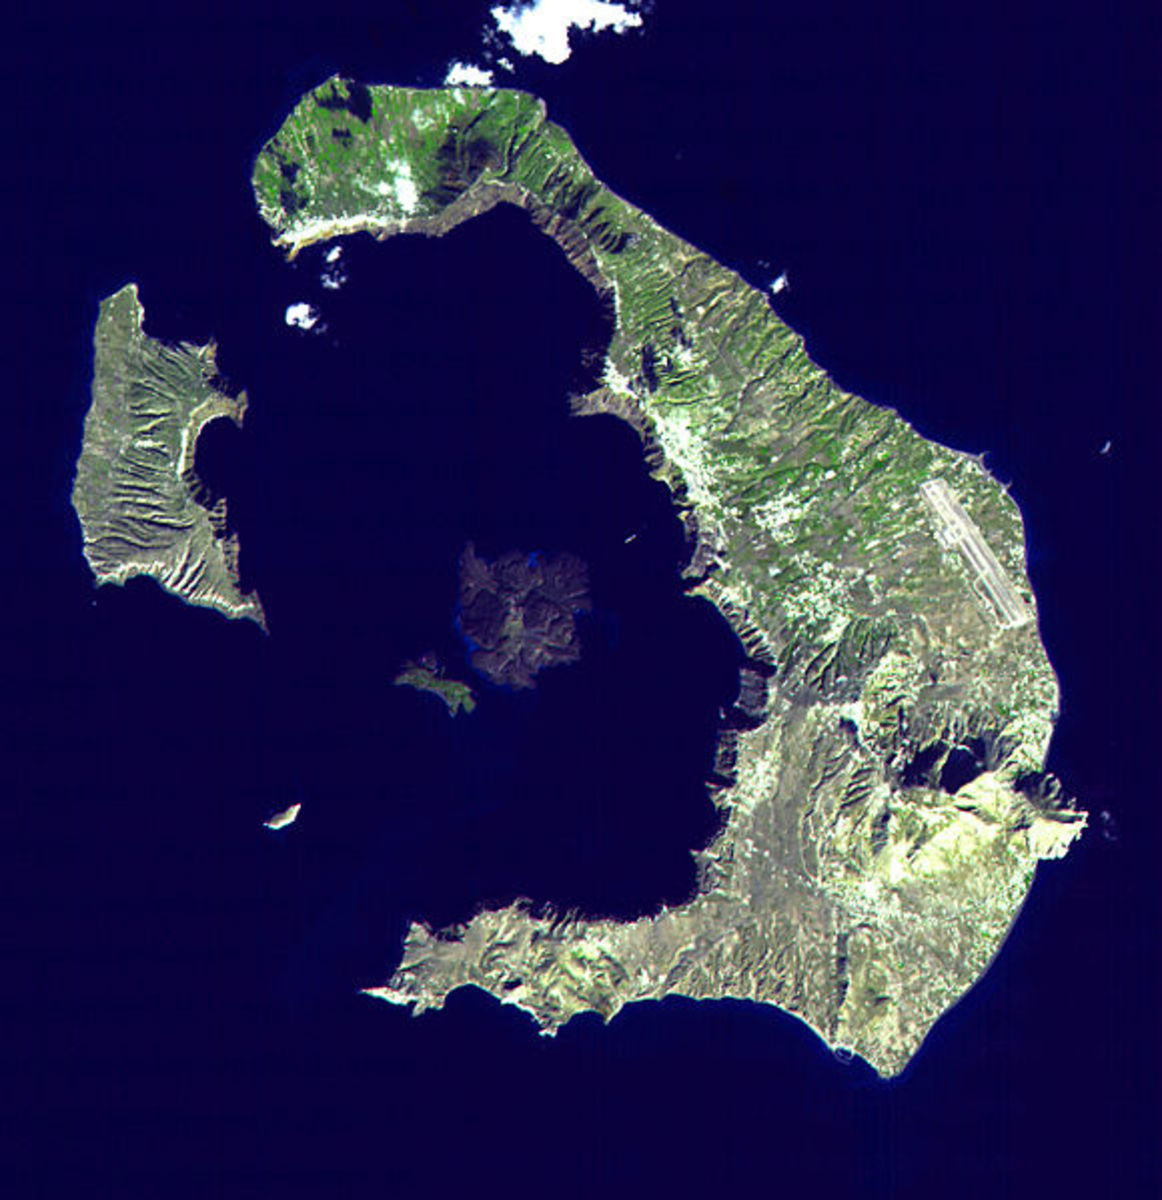 The island of Santorini, one of the most likely sites for the legendary lost city of Atlantis.